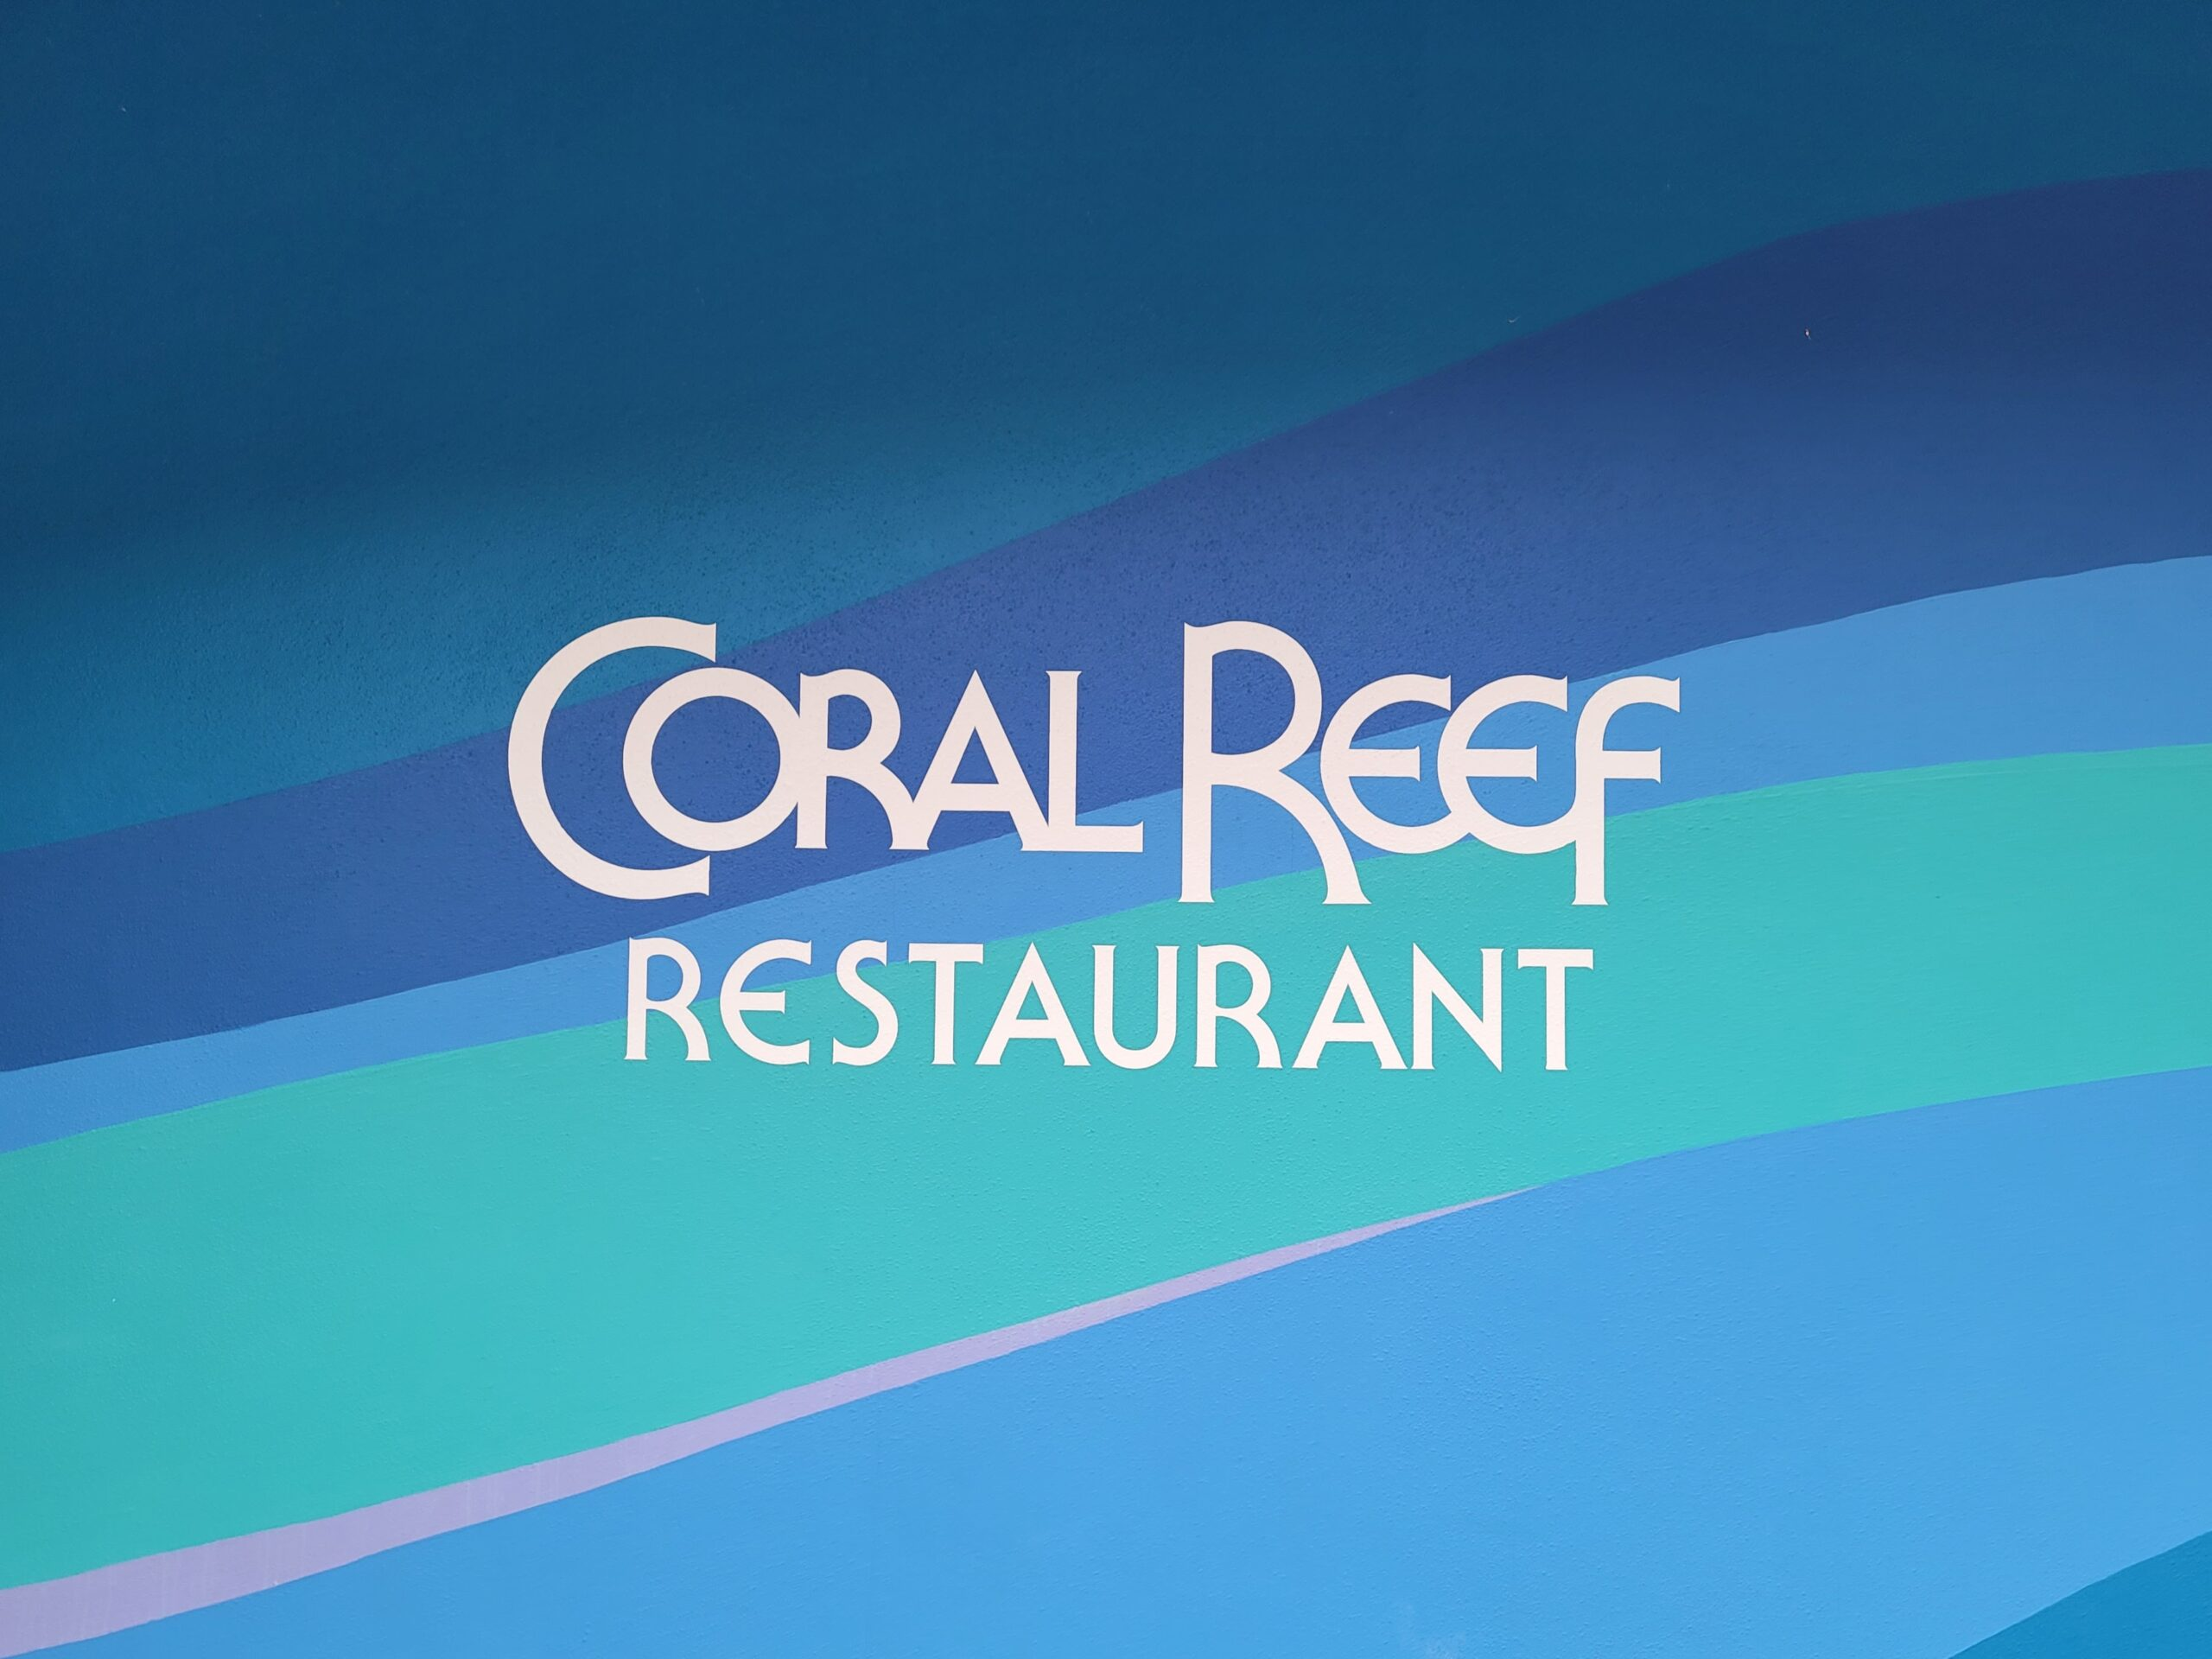 Coral Reef Restaurant Sign